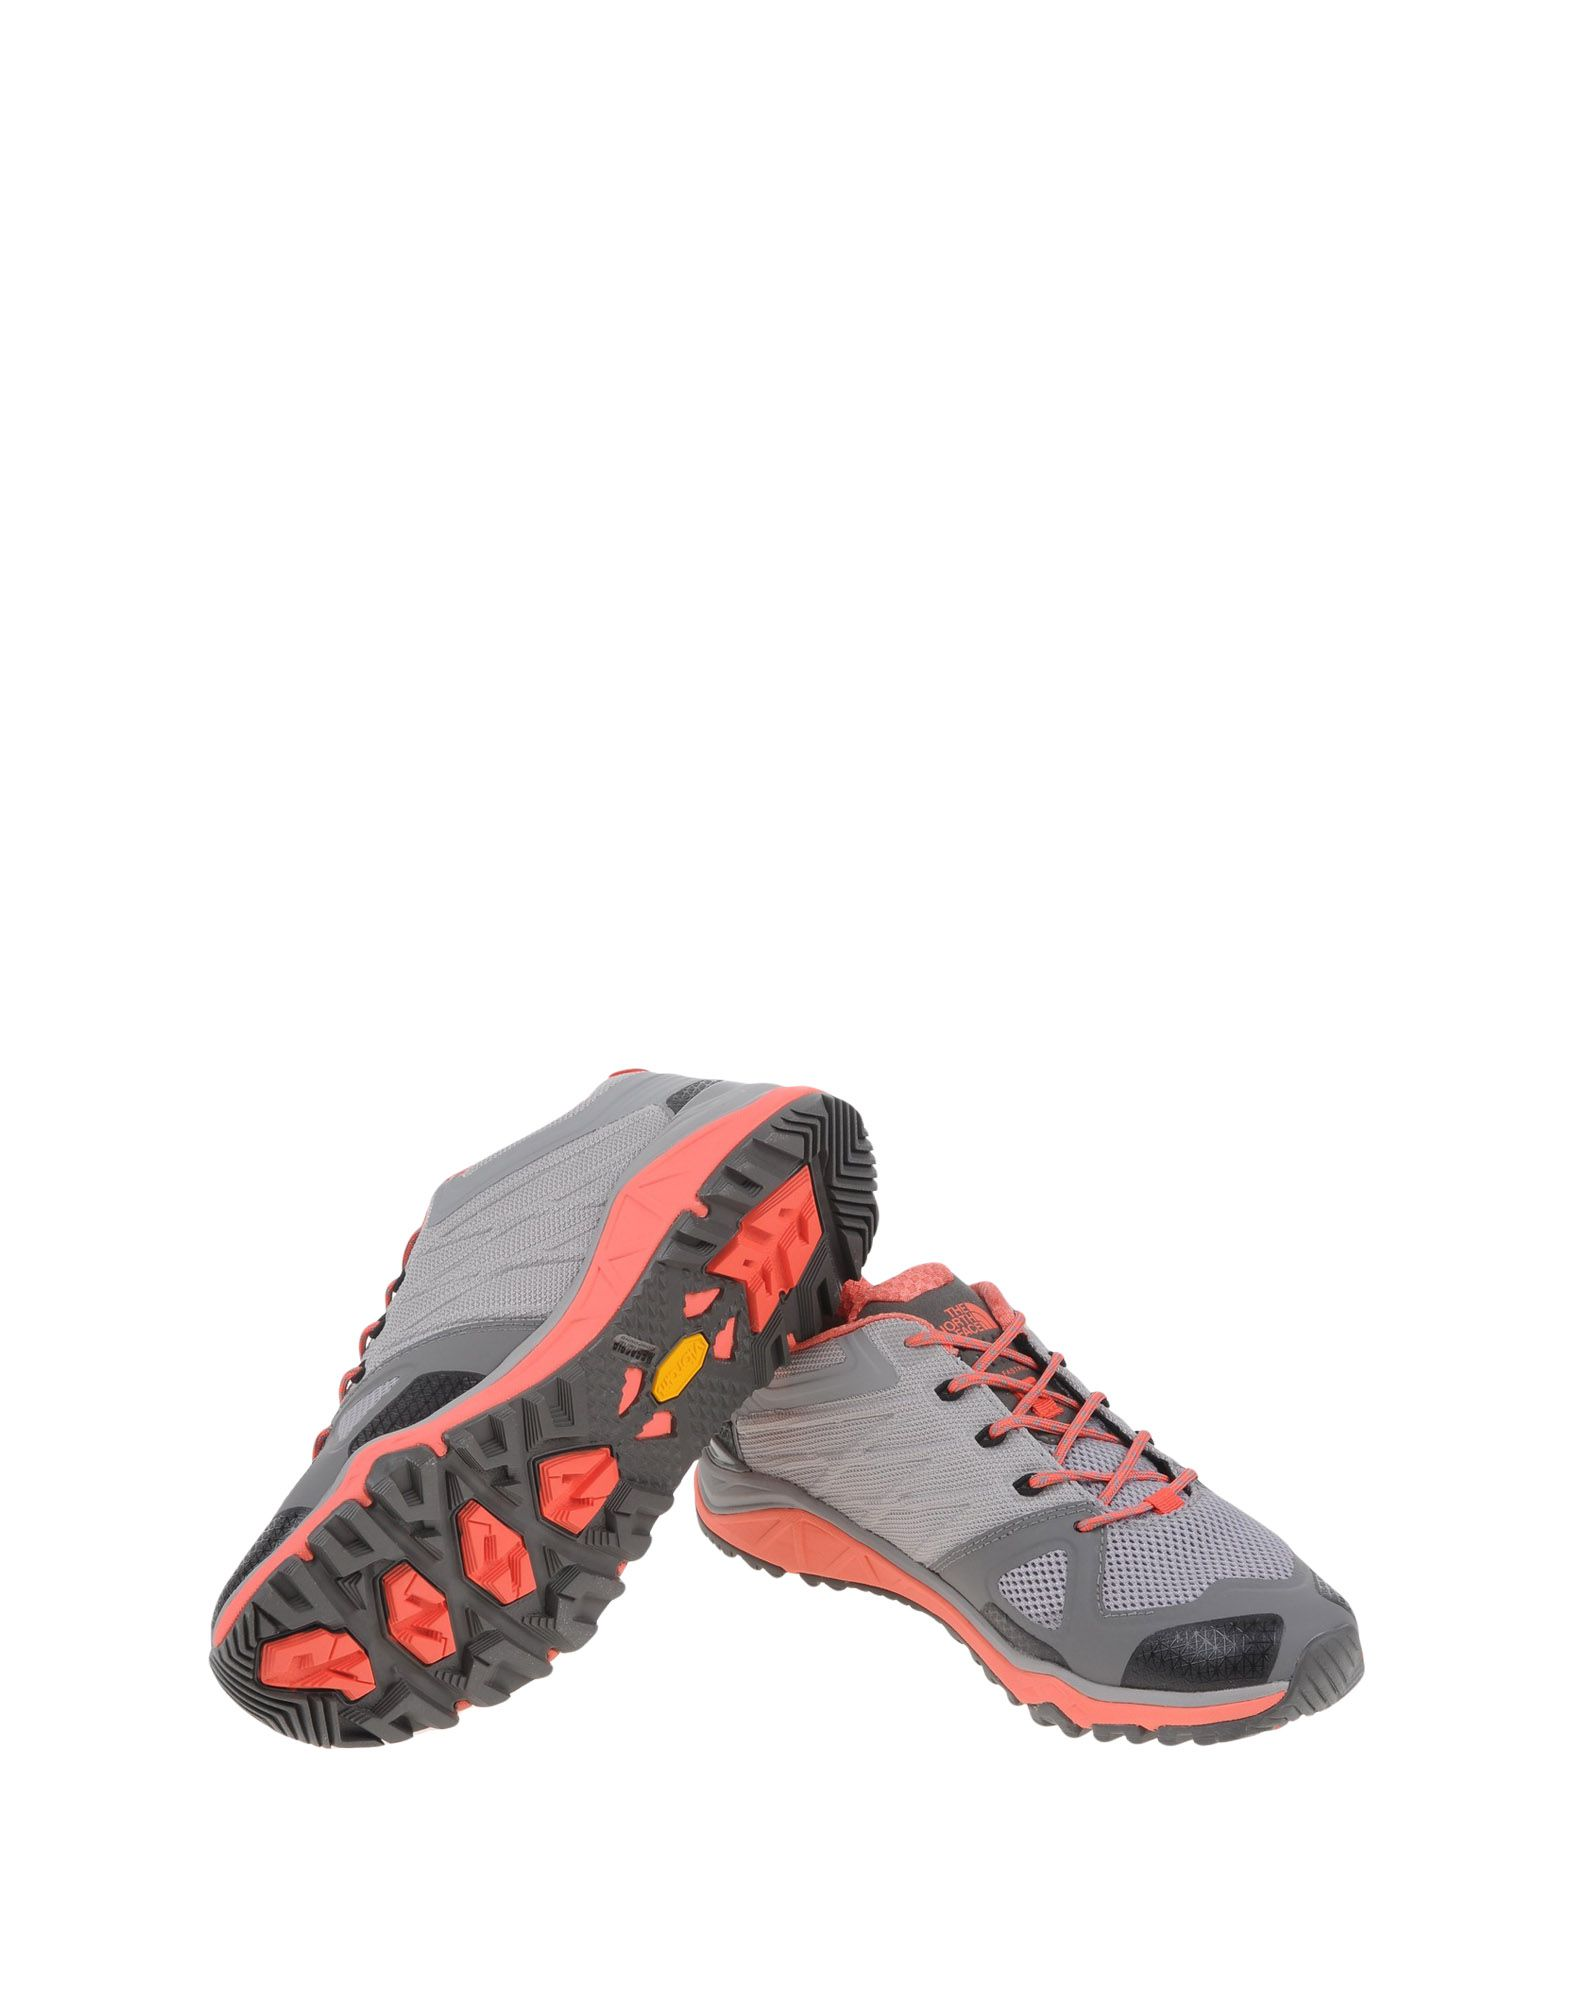 Sneakers The North Face W Ultra Fastpack Ii Gore Tex Waterproof And Vibram Megagrip - Femme - Sneakers The North Face sur